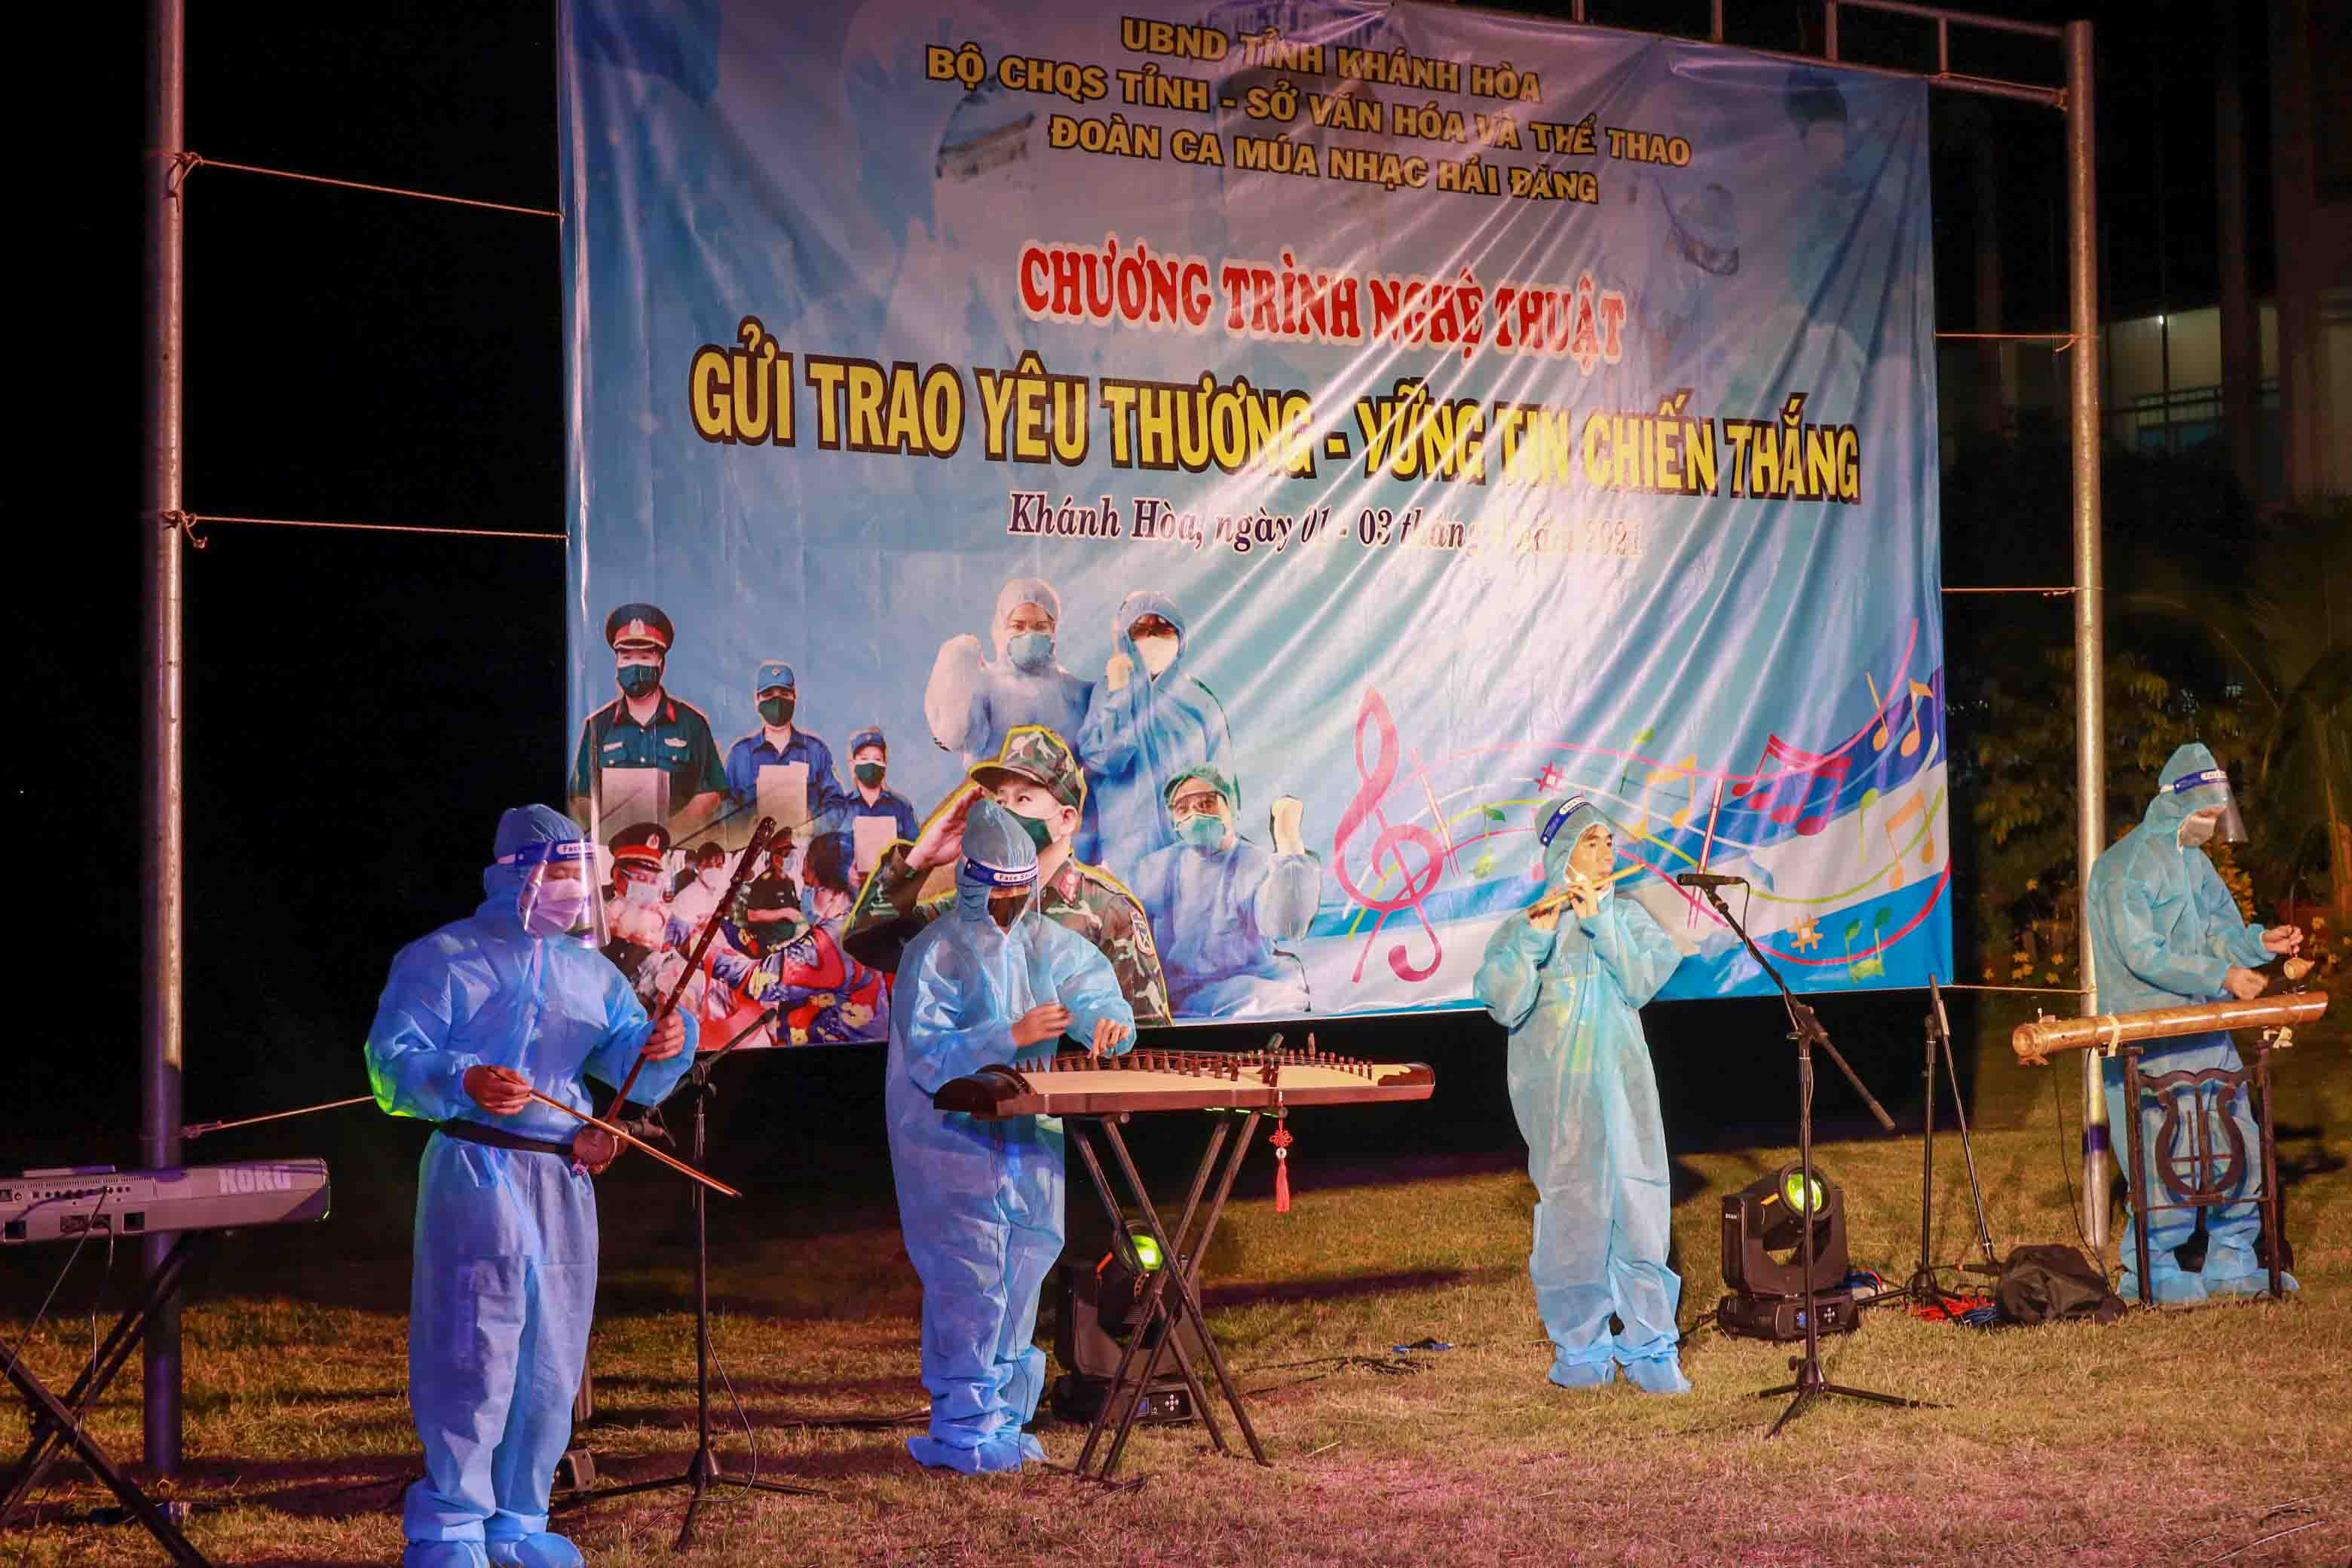 Performance of traditional musical instruments